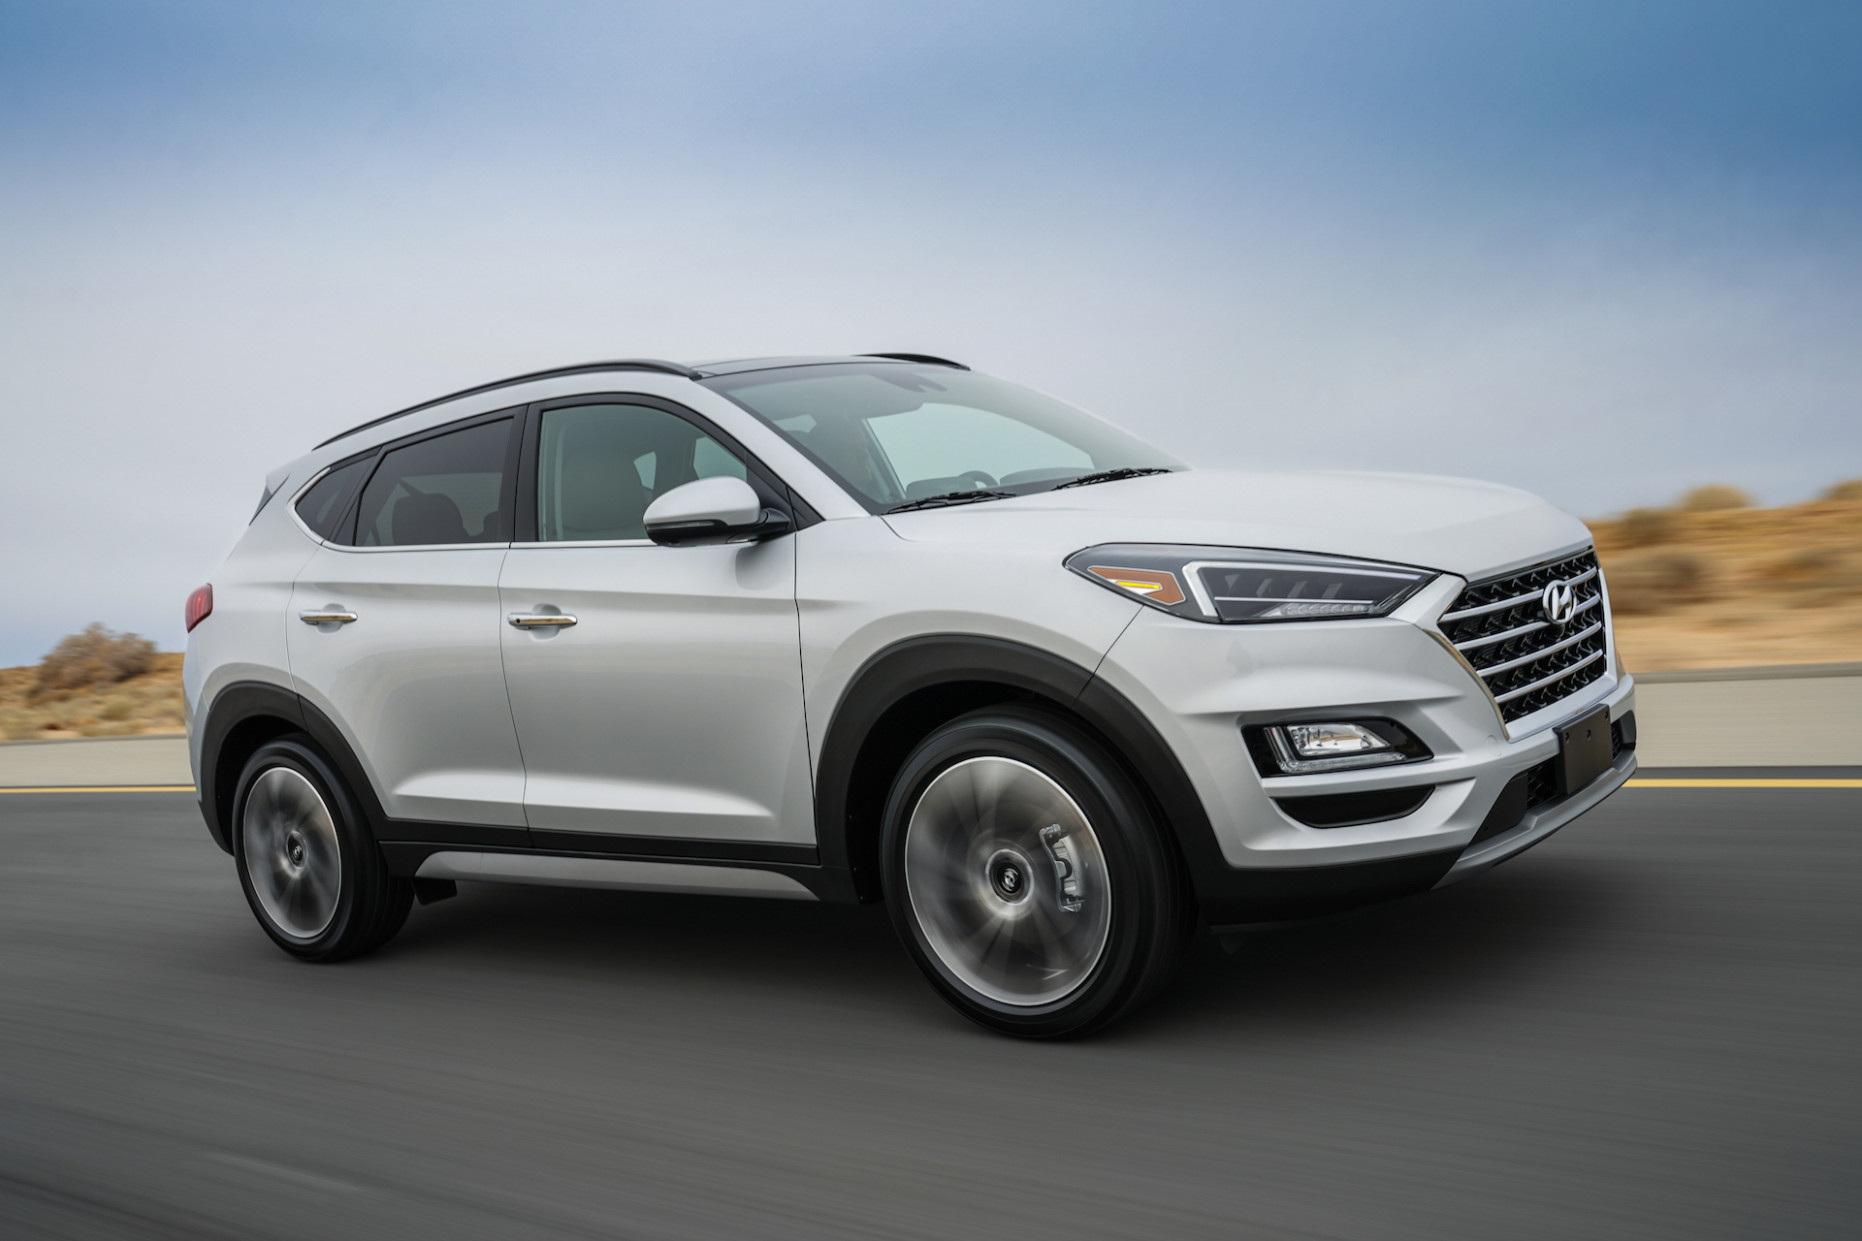 6 Hyundai Tucson Review, Ratings, Specs, Prices, and Photos ..